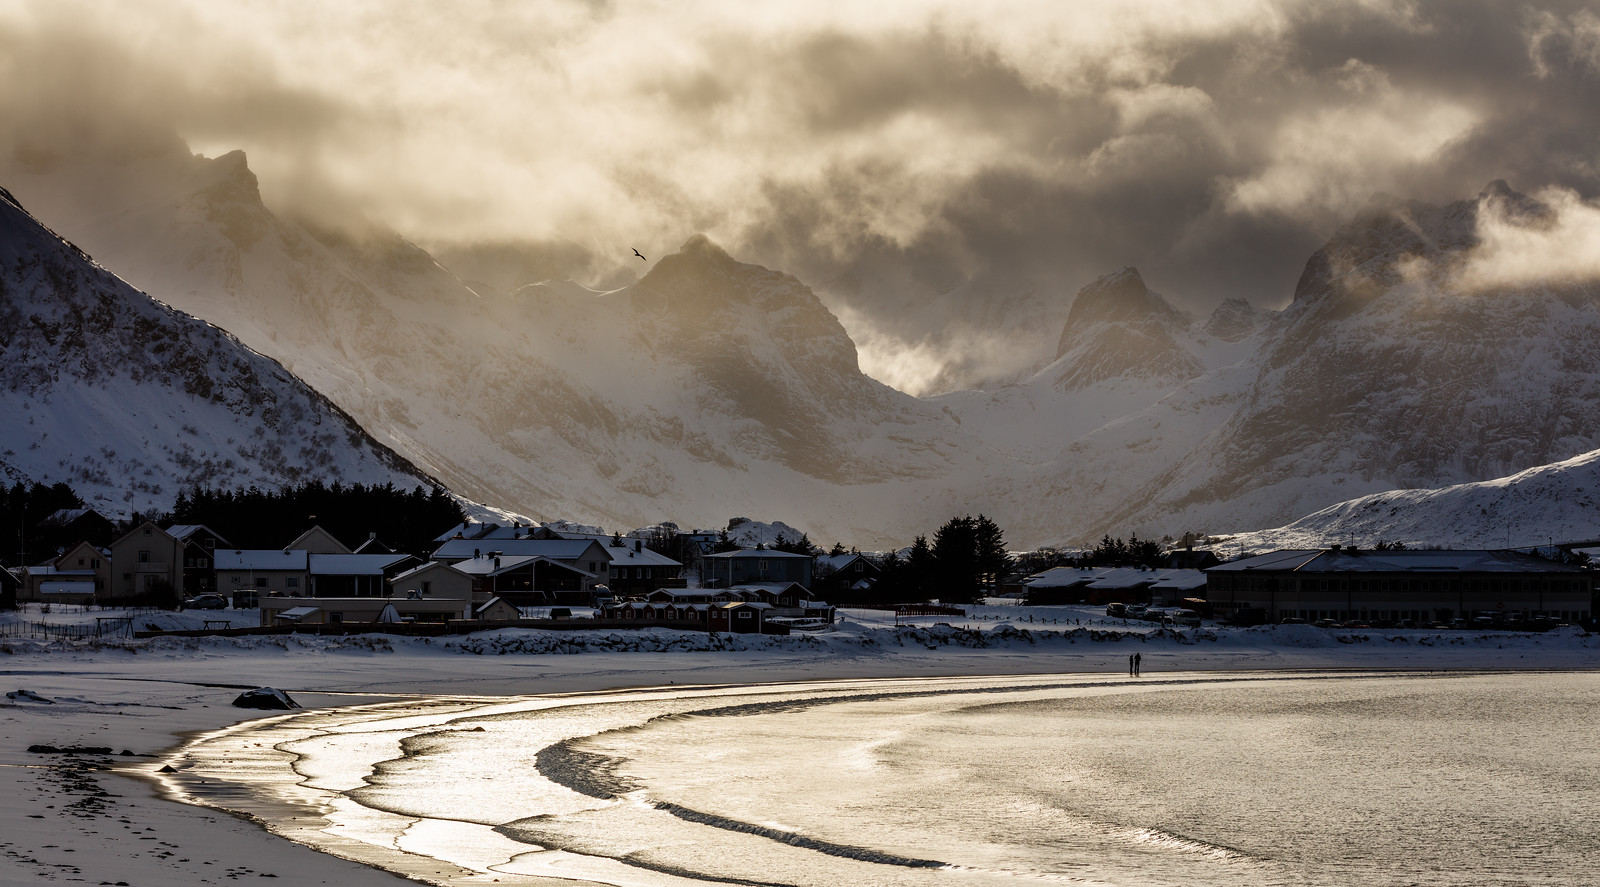 At the beach in Lofoten in winter